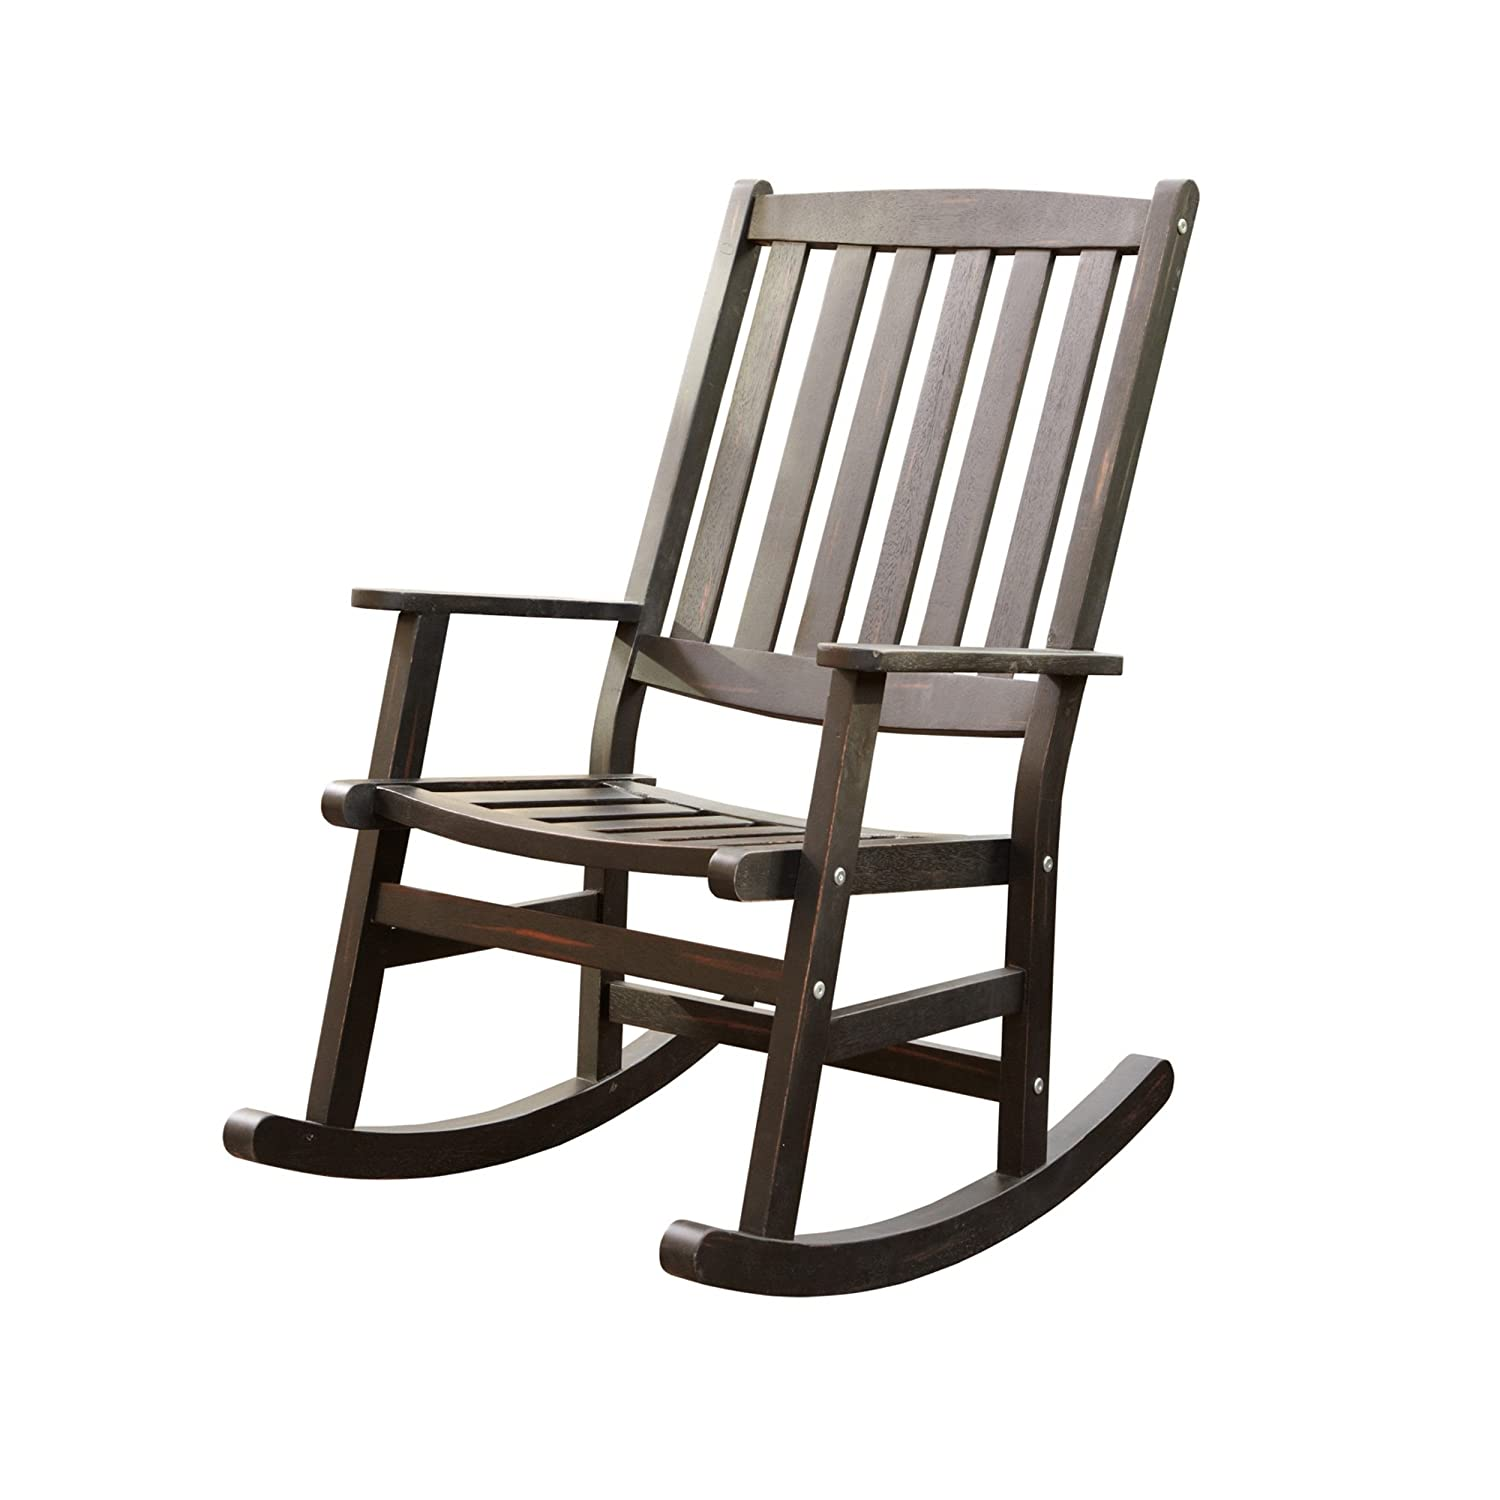 Home Styles Bali Hai Outdoor Rocking Chair, Black